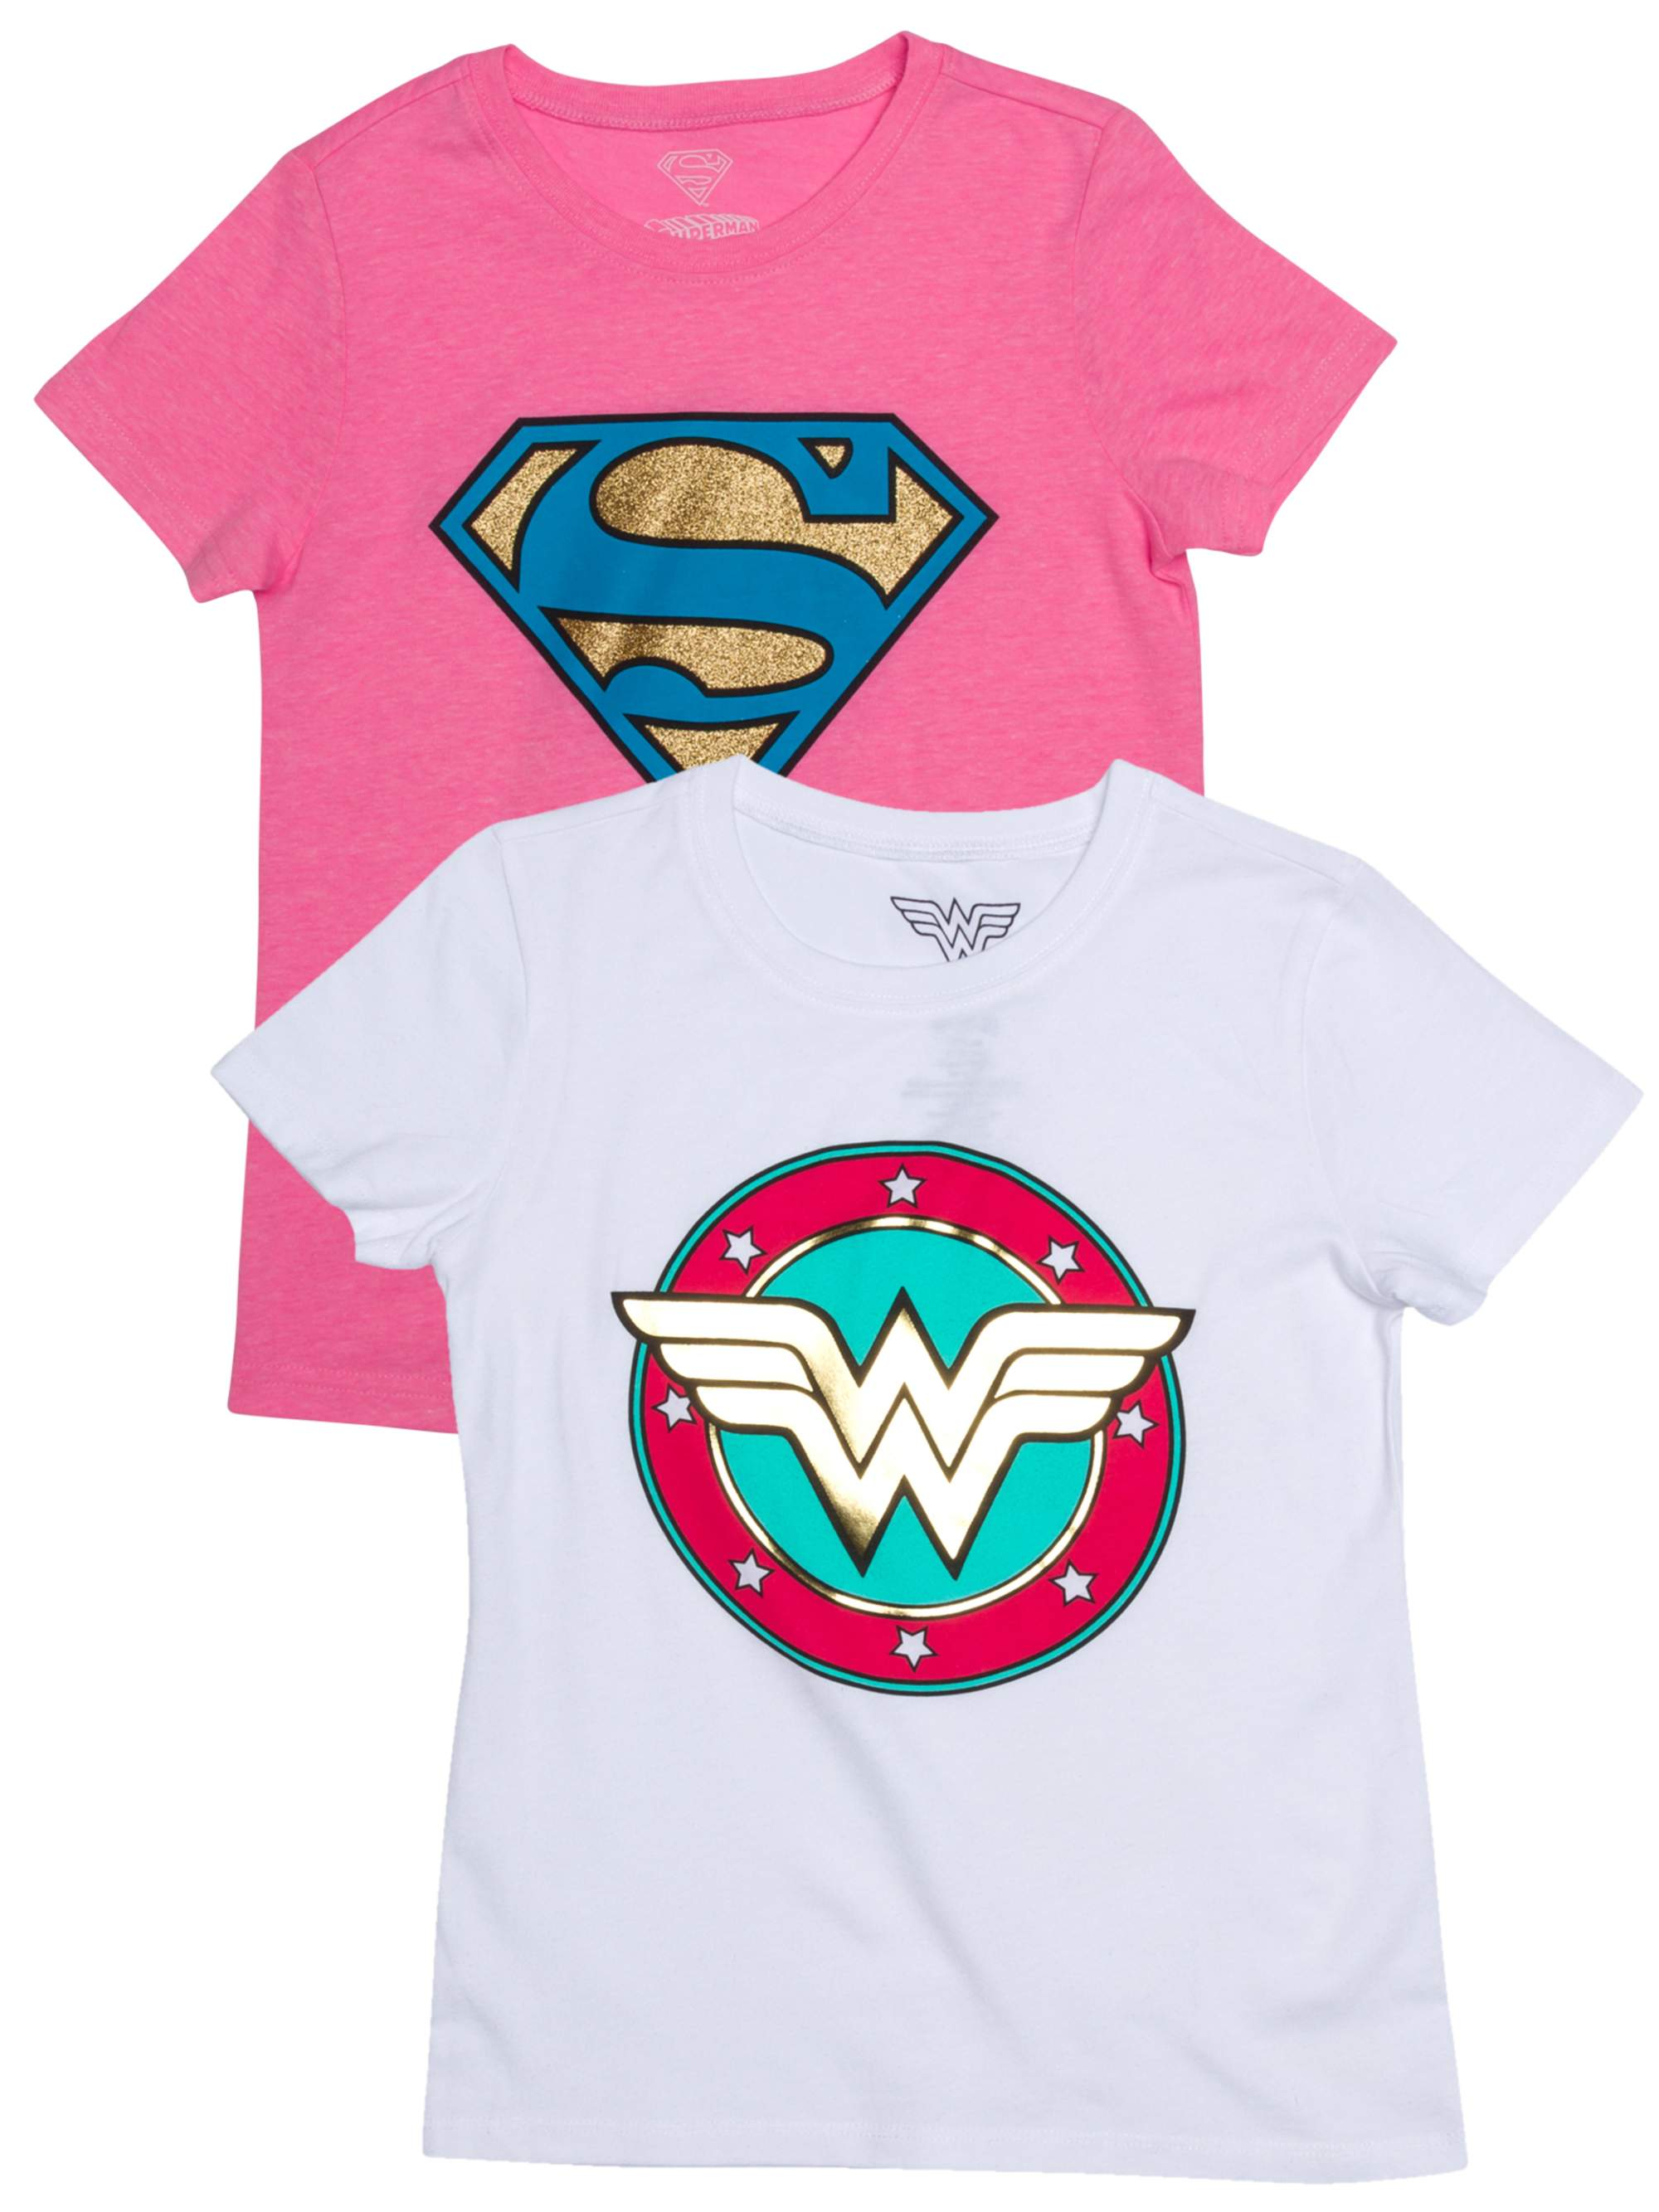 Supergirl and Wonder Woman Metallic Logo Graphic T-Shirts, 2-Pack Set (Little Girls & Big Girls)